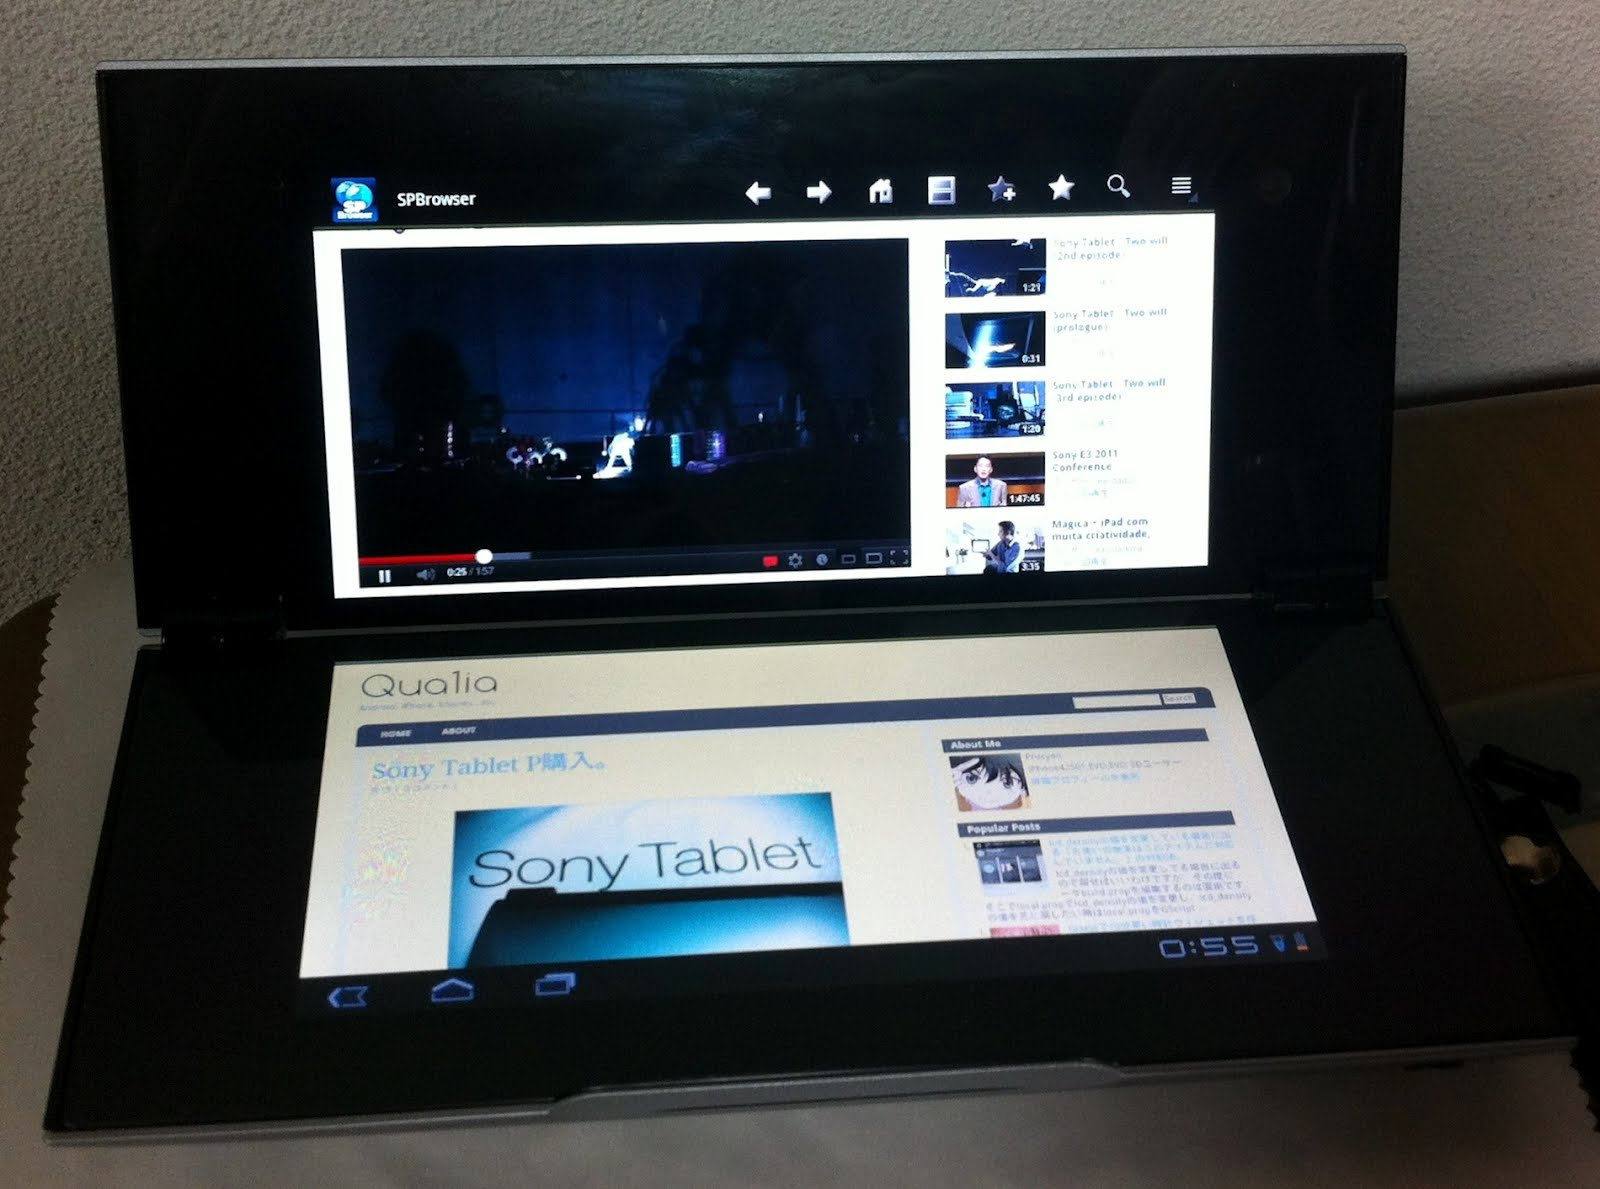 qua1ia sony tablet p 2 spbrowser. Black Bedroom Furniture Sets. Home Design Ideas